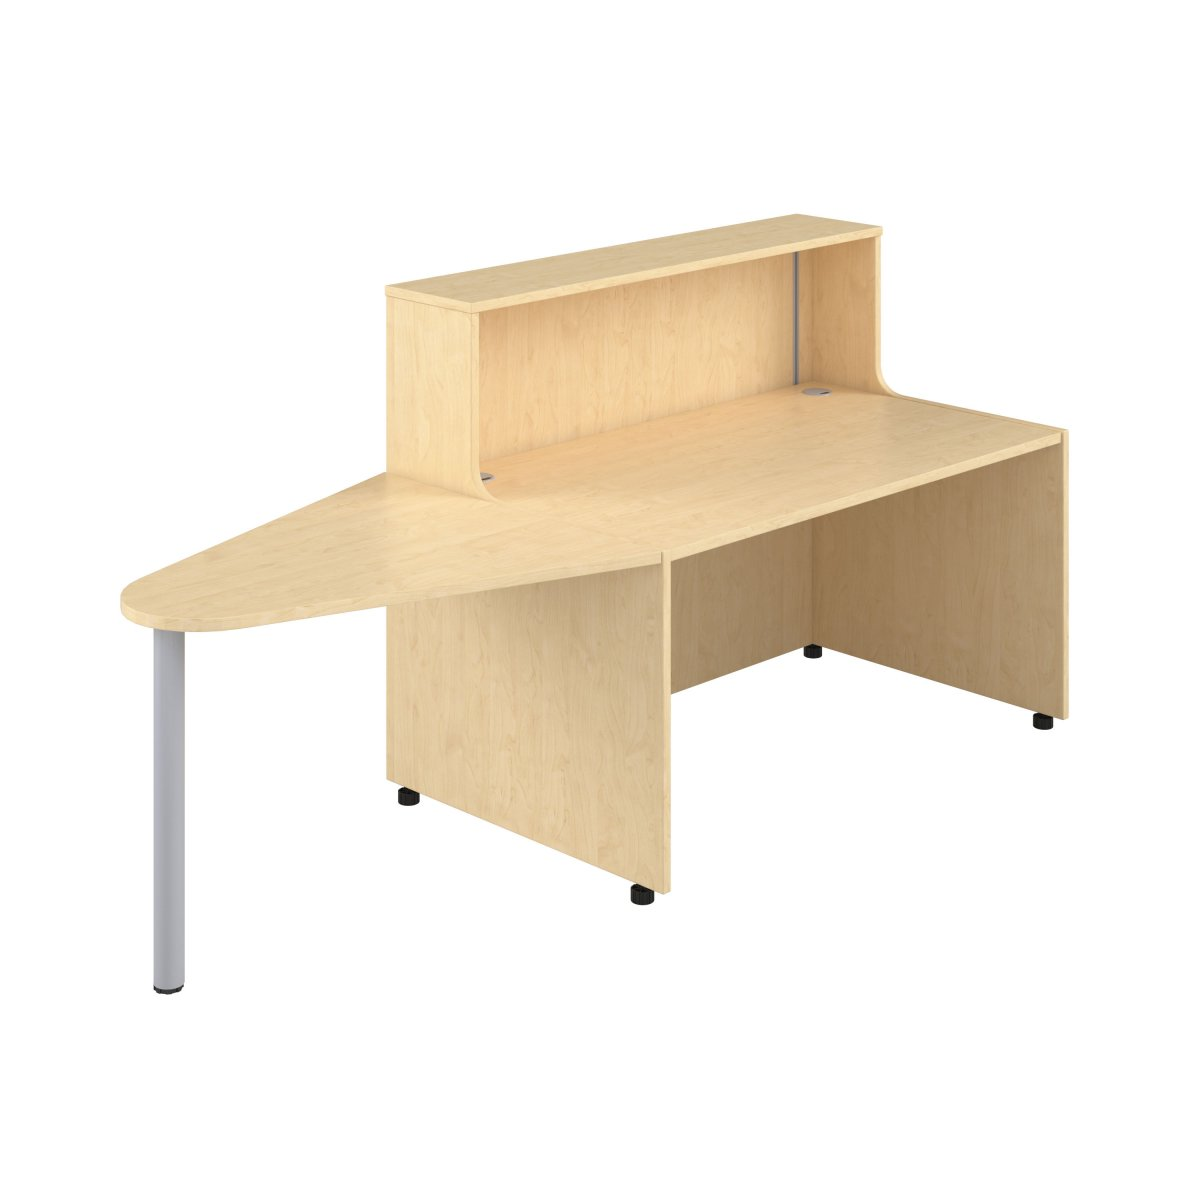 Reception Unit 1400 With Extension - Maple Sides With Maple Top